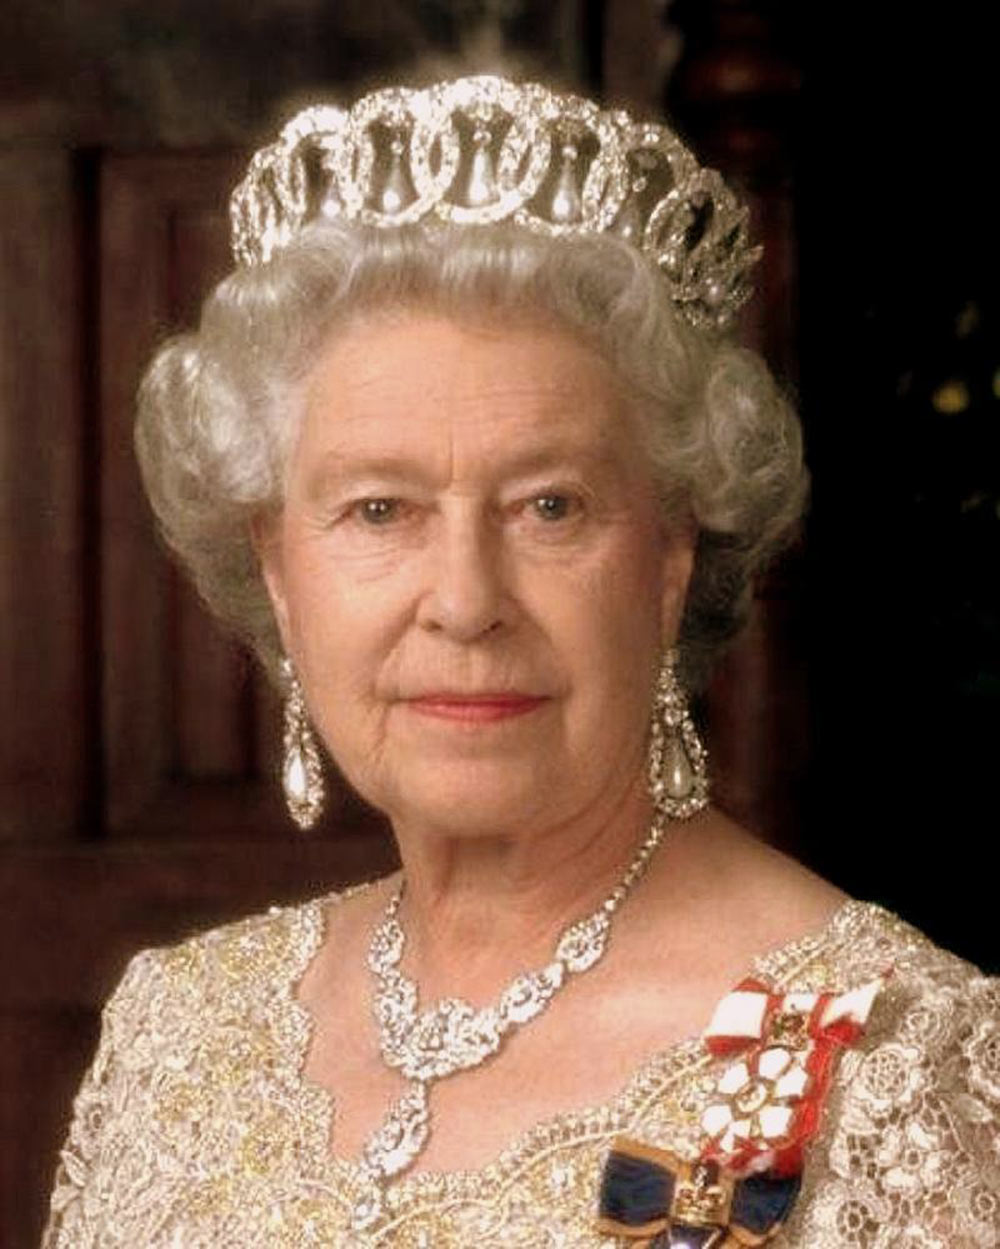 Queen Elizabeth II of the United Kingdom